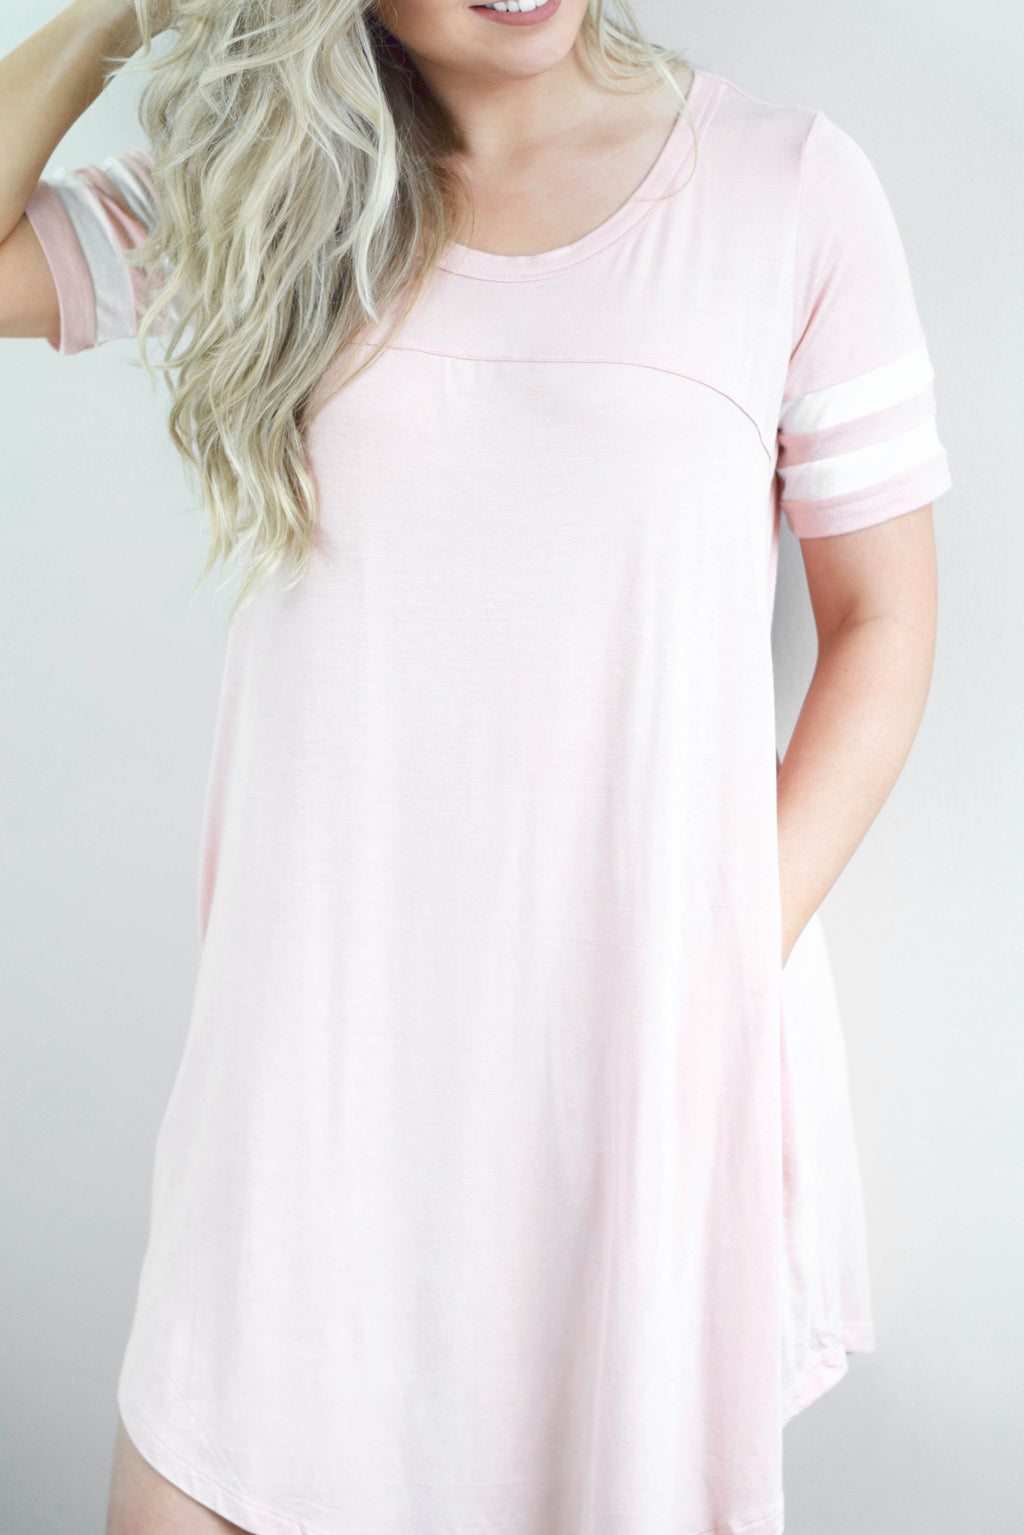 Varsity Peach Jersey Dress - Mint Pop Shop